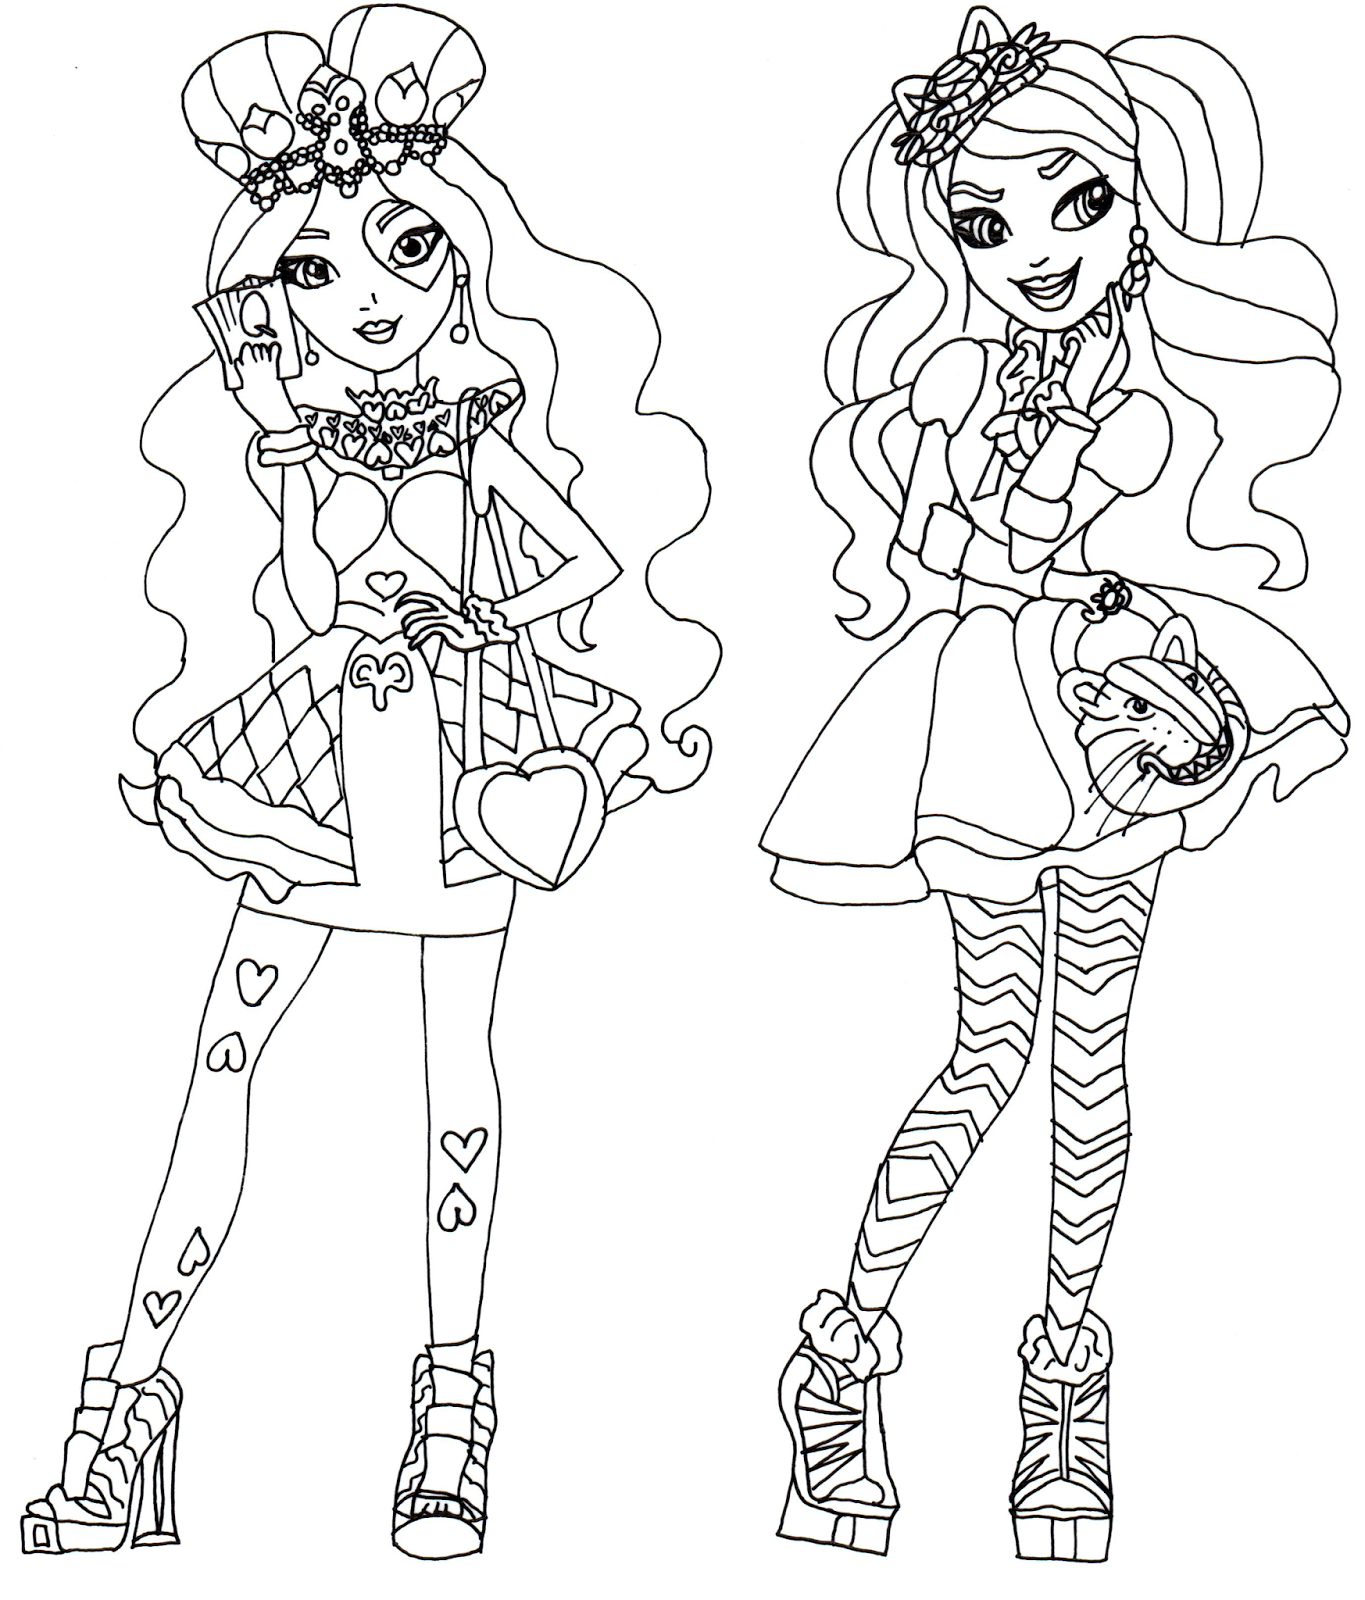 kitty cheshire coloring pages - photo#2